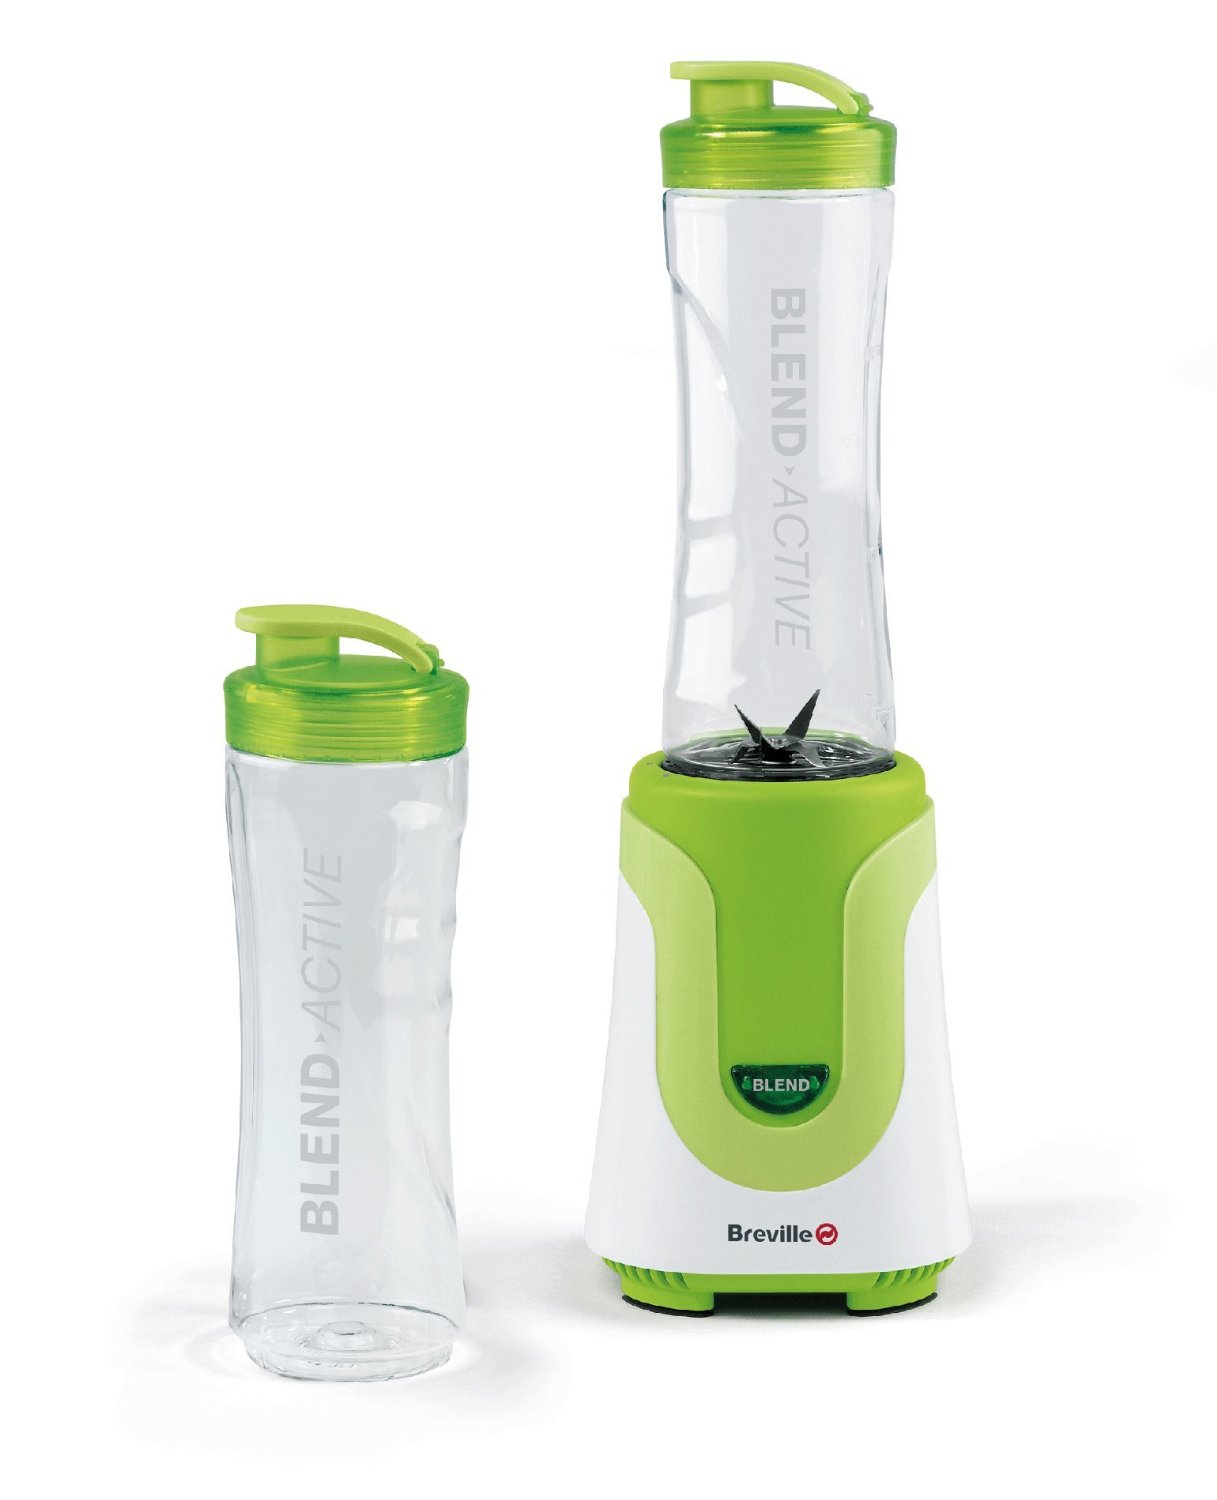 Breville Vbl062 Blend Active 300w Smoothie Milkshake